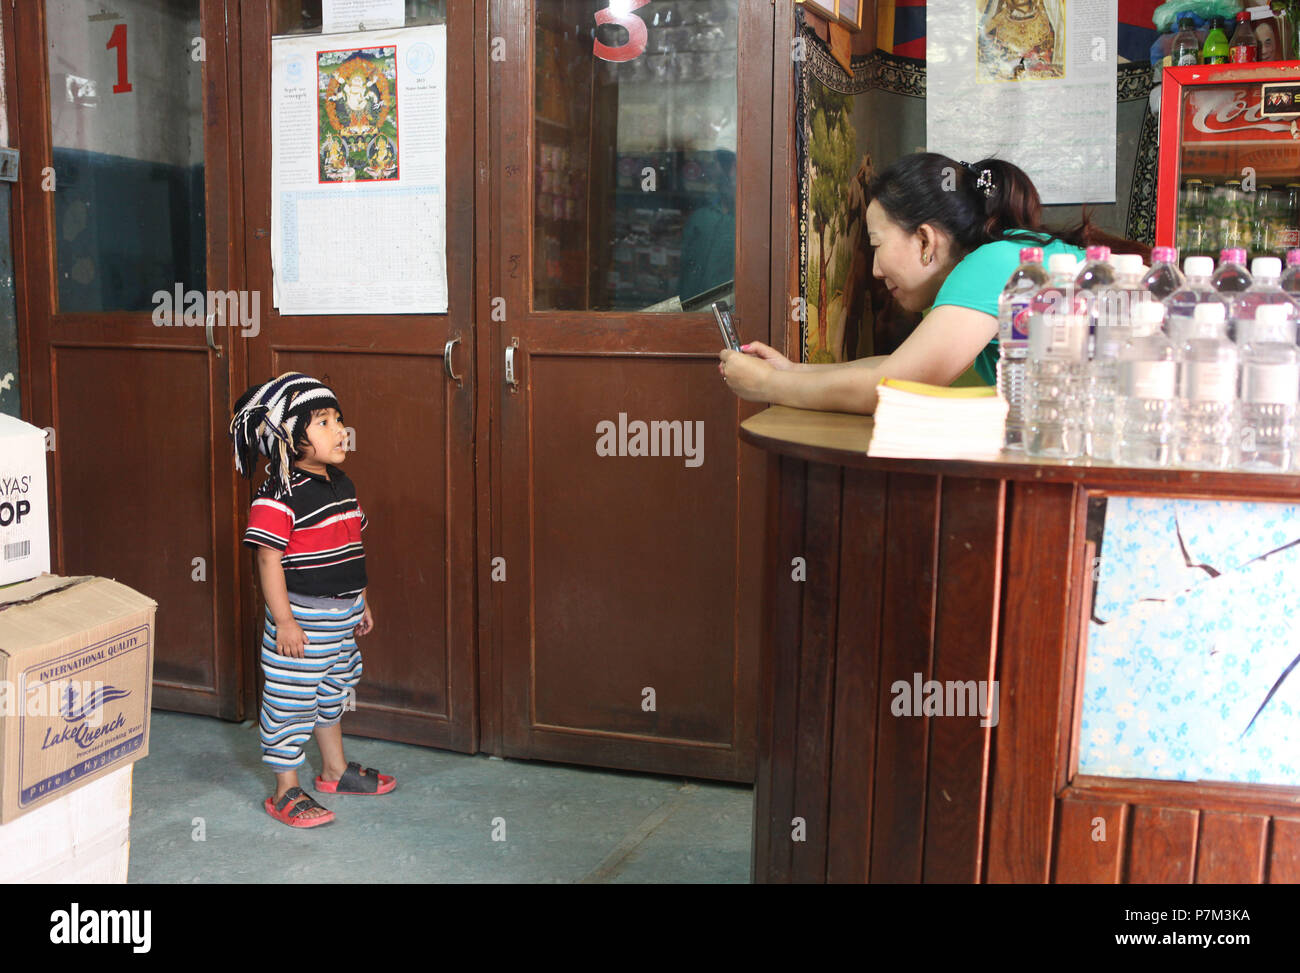 Shop assistant photographing little boy with headgear in corner shop, Kathmandu, Nepal - Stock Image